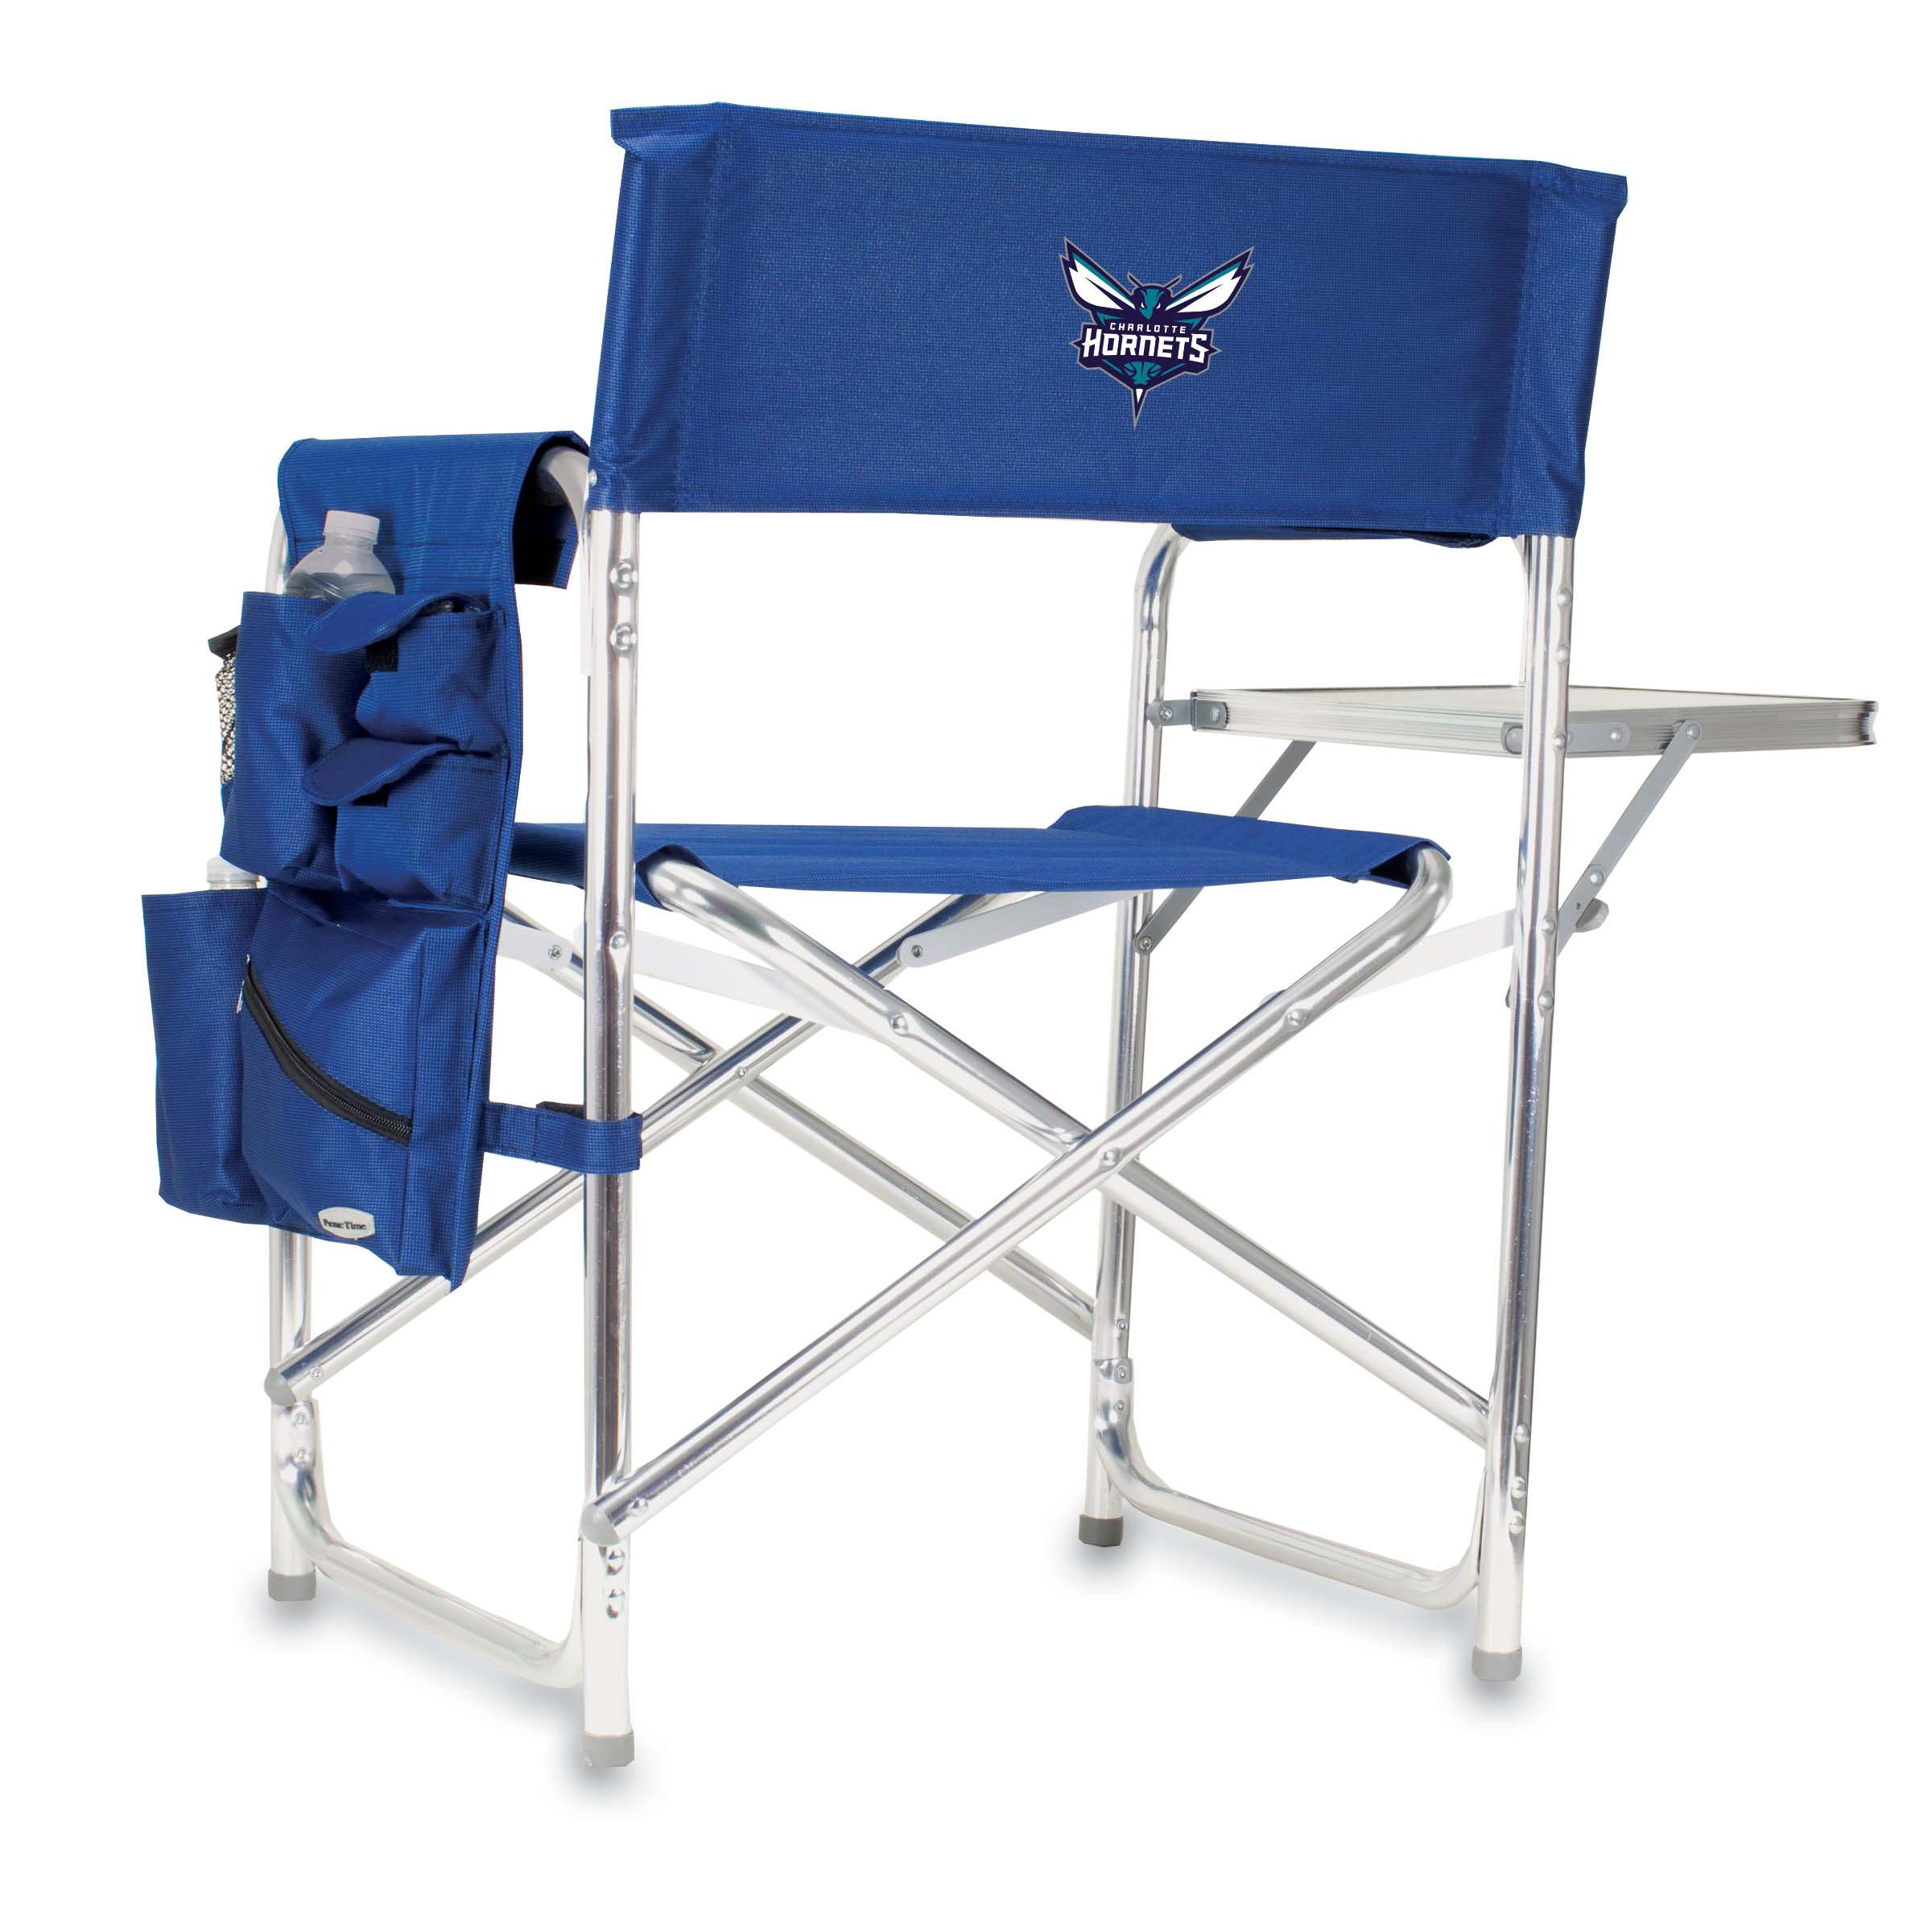 Picnic Time Nba Sports Chair Charlotte Hornets